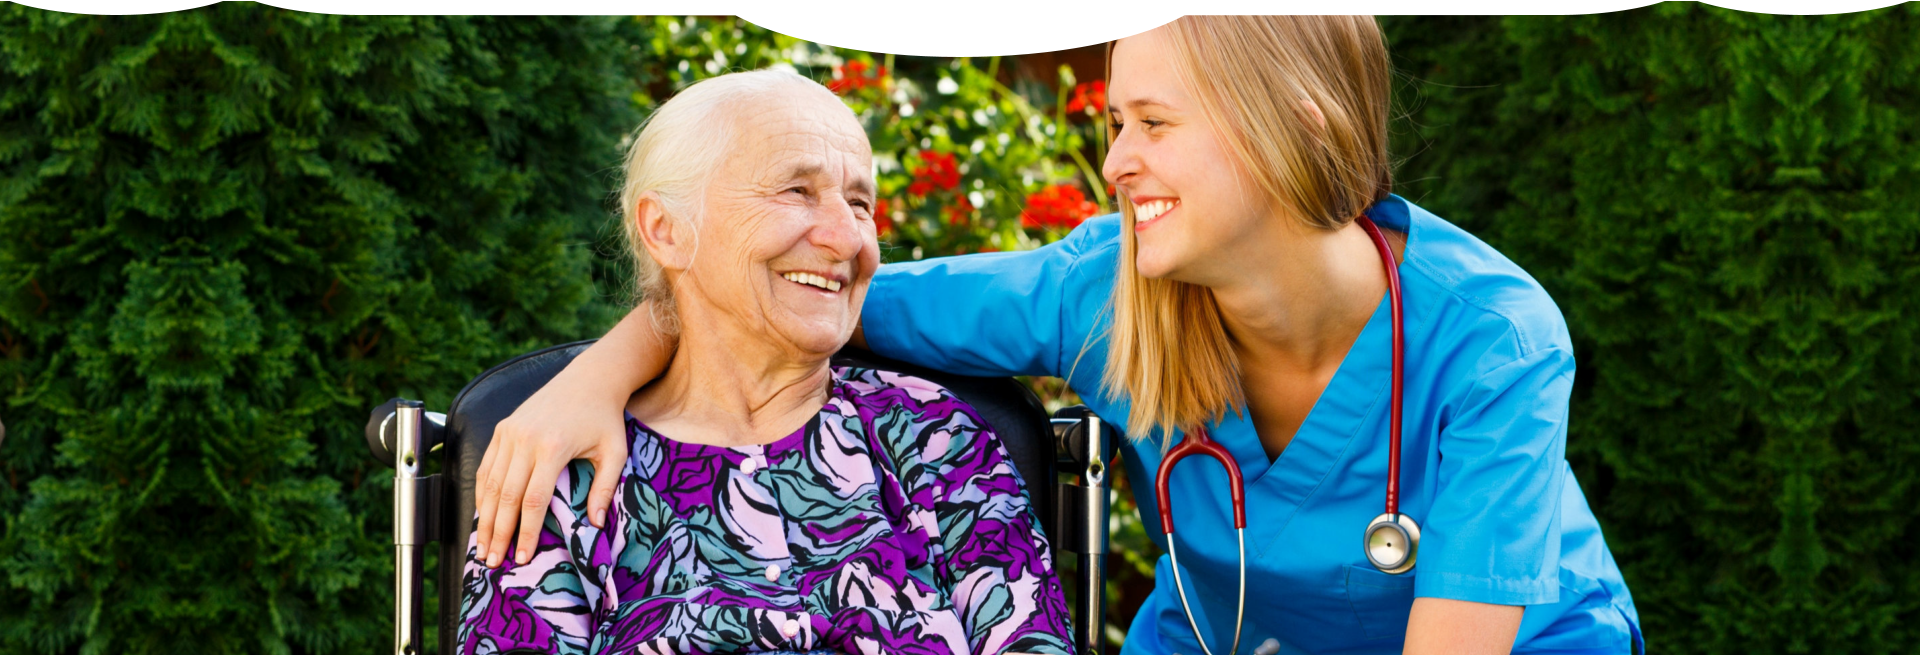 caregiver and patient smiling and looking at each other